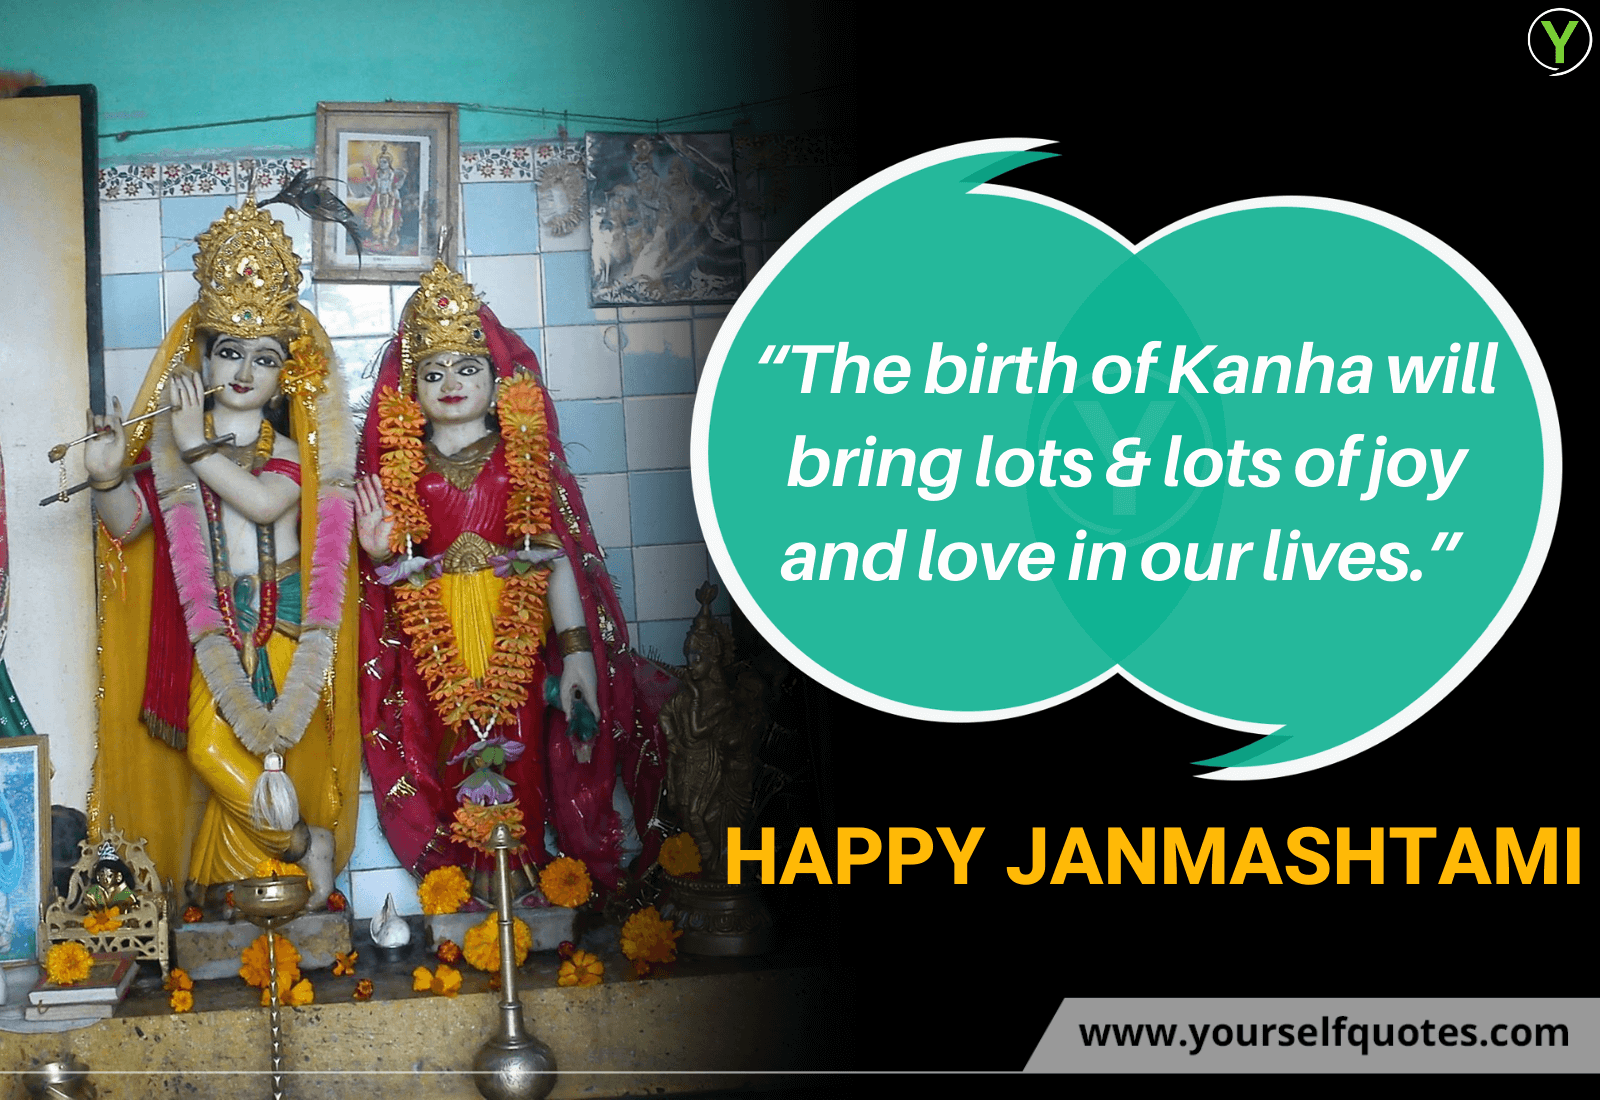 Happy Janmashtami Best Wishes